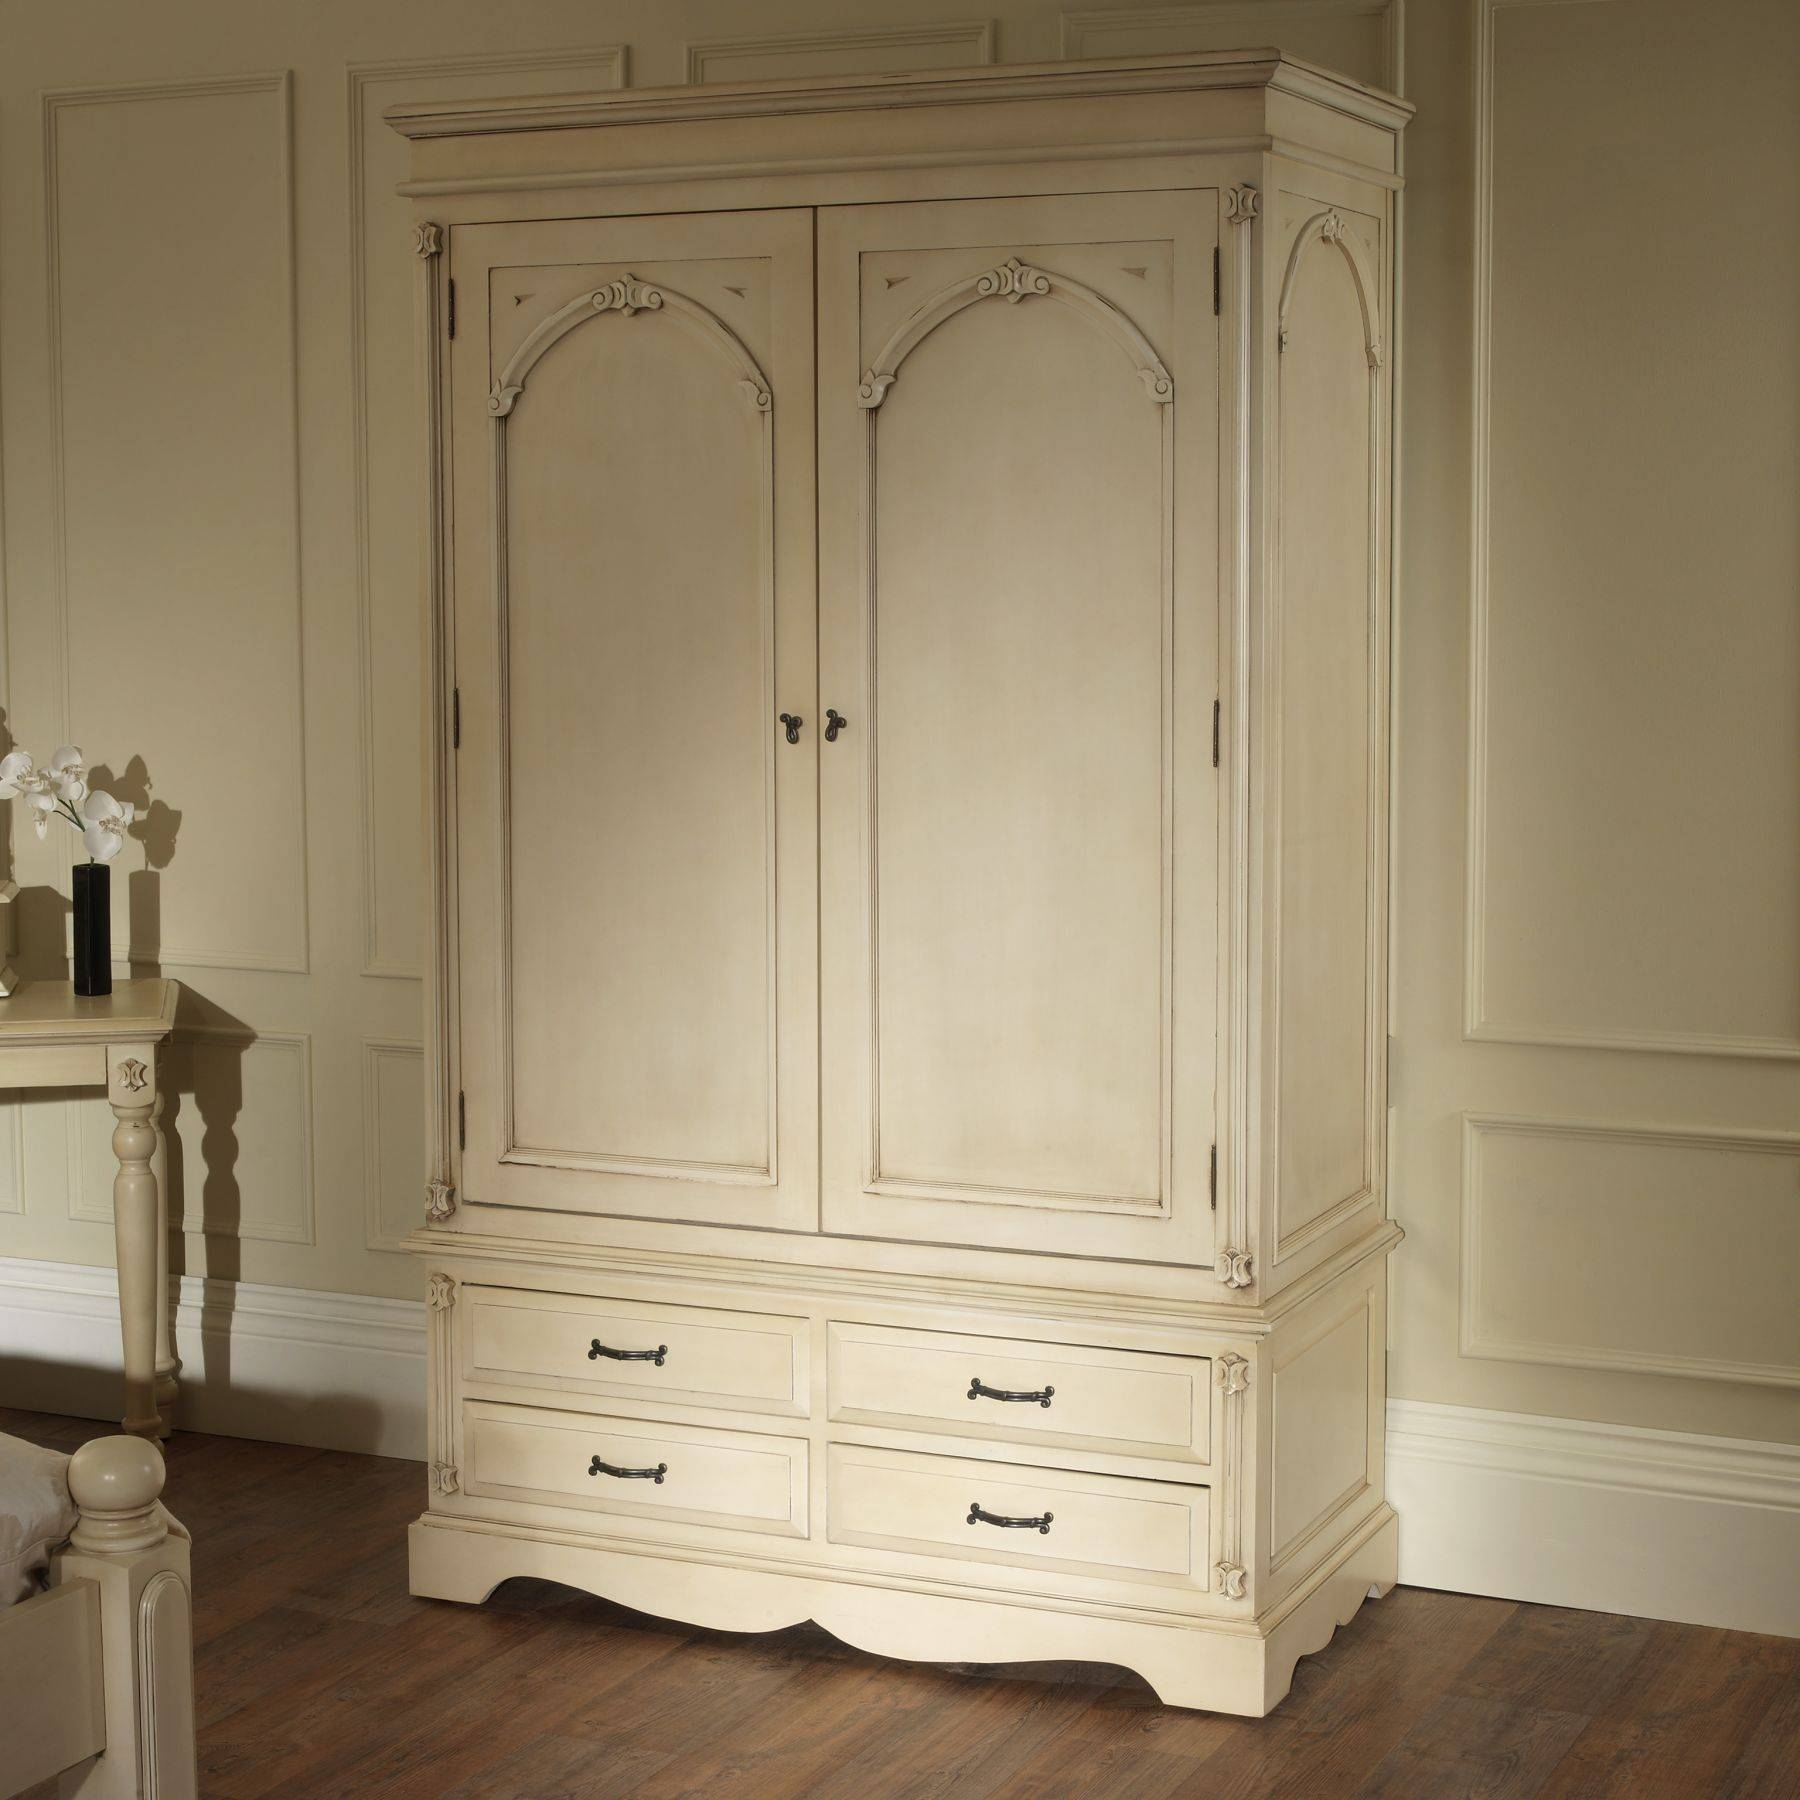 Victorian Antique French Wardrobe Works Well Alongside Our Shabby within Victorian Wardrobes (Image 7 of 15)